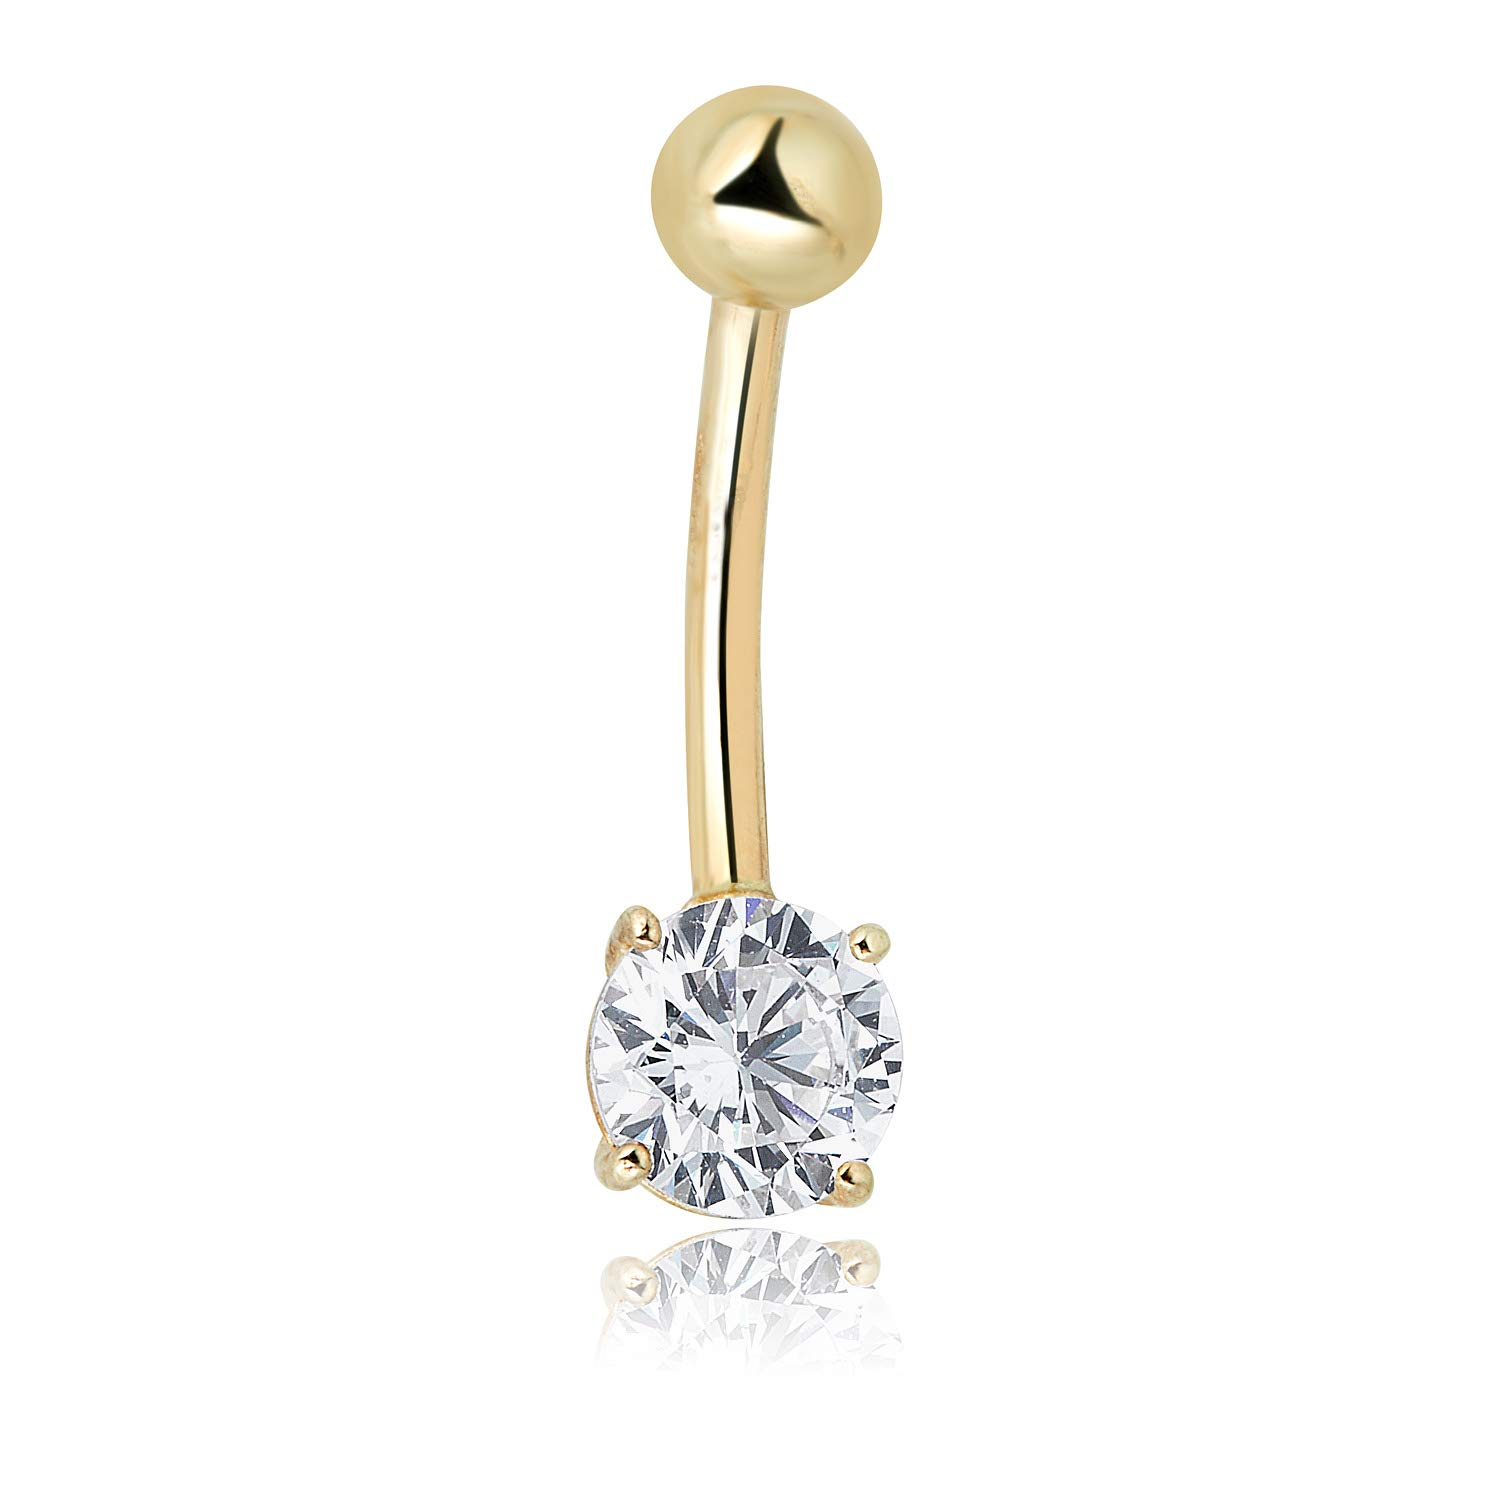 AVORA 10K Yellow Gold Simulated Diamond CZ Solitaire Belly Button Ring Body Jewelry - 014 Gauge by AVORA